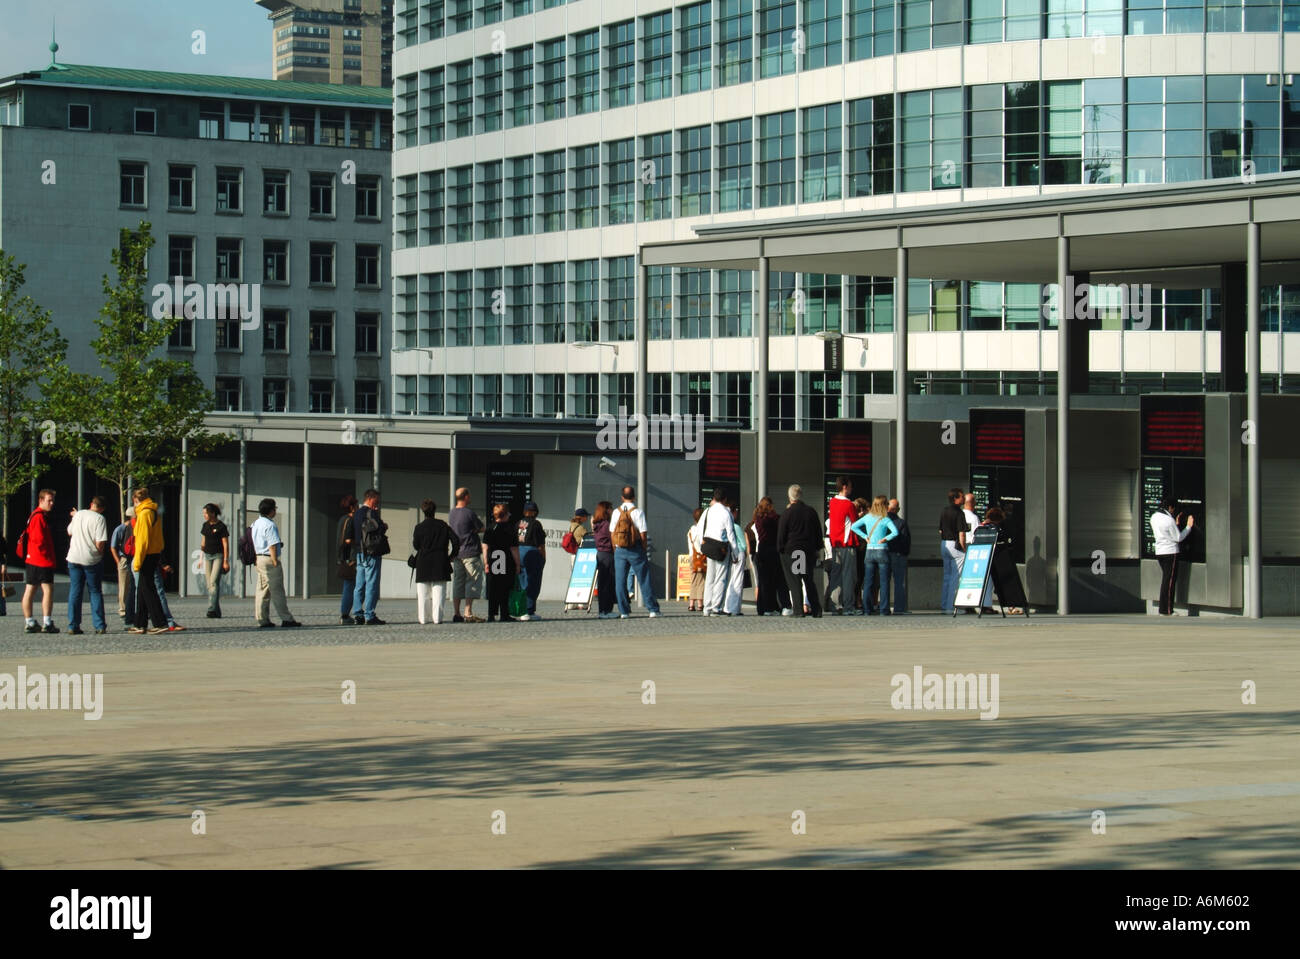 Tower Hill remodelled approach areas to the Tower of London with early morning queues waiting for ticket booths Stock Photo